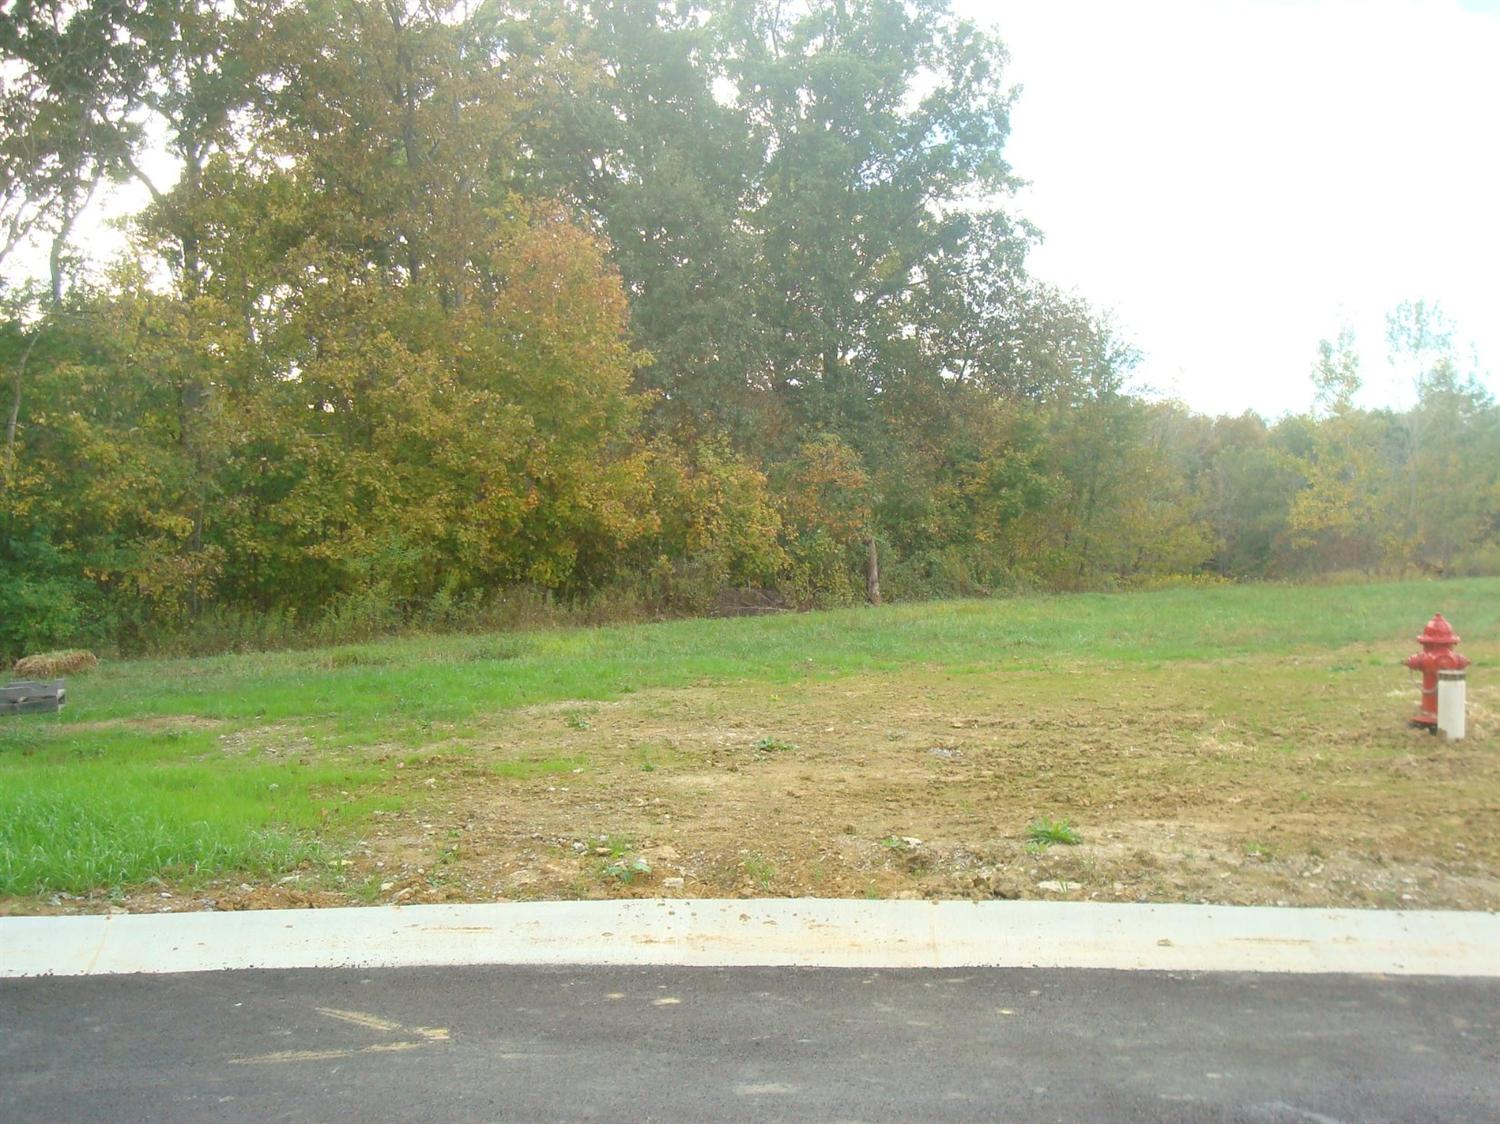 real estate photo 1 for Hannahs Way - Lot 78 Crittenden, KY 41030